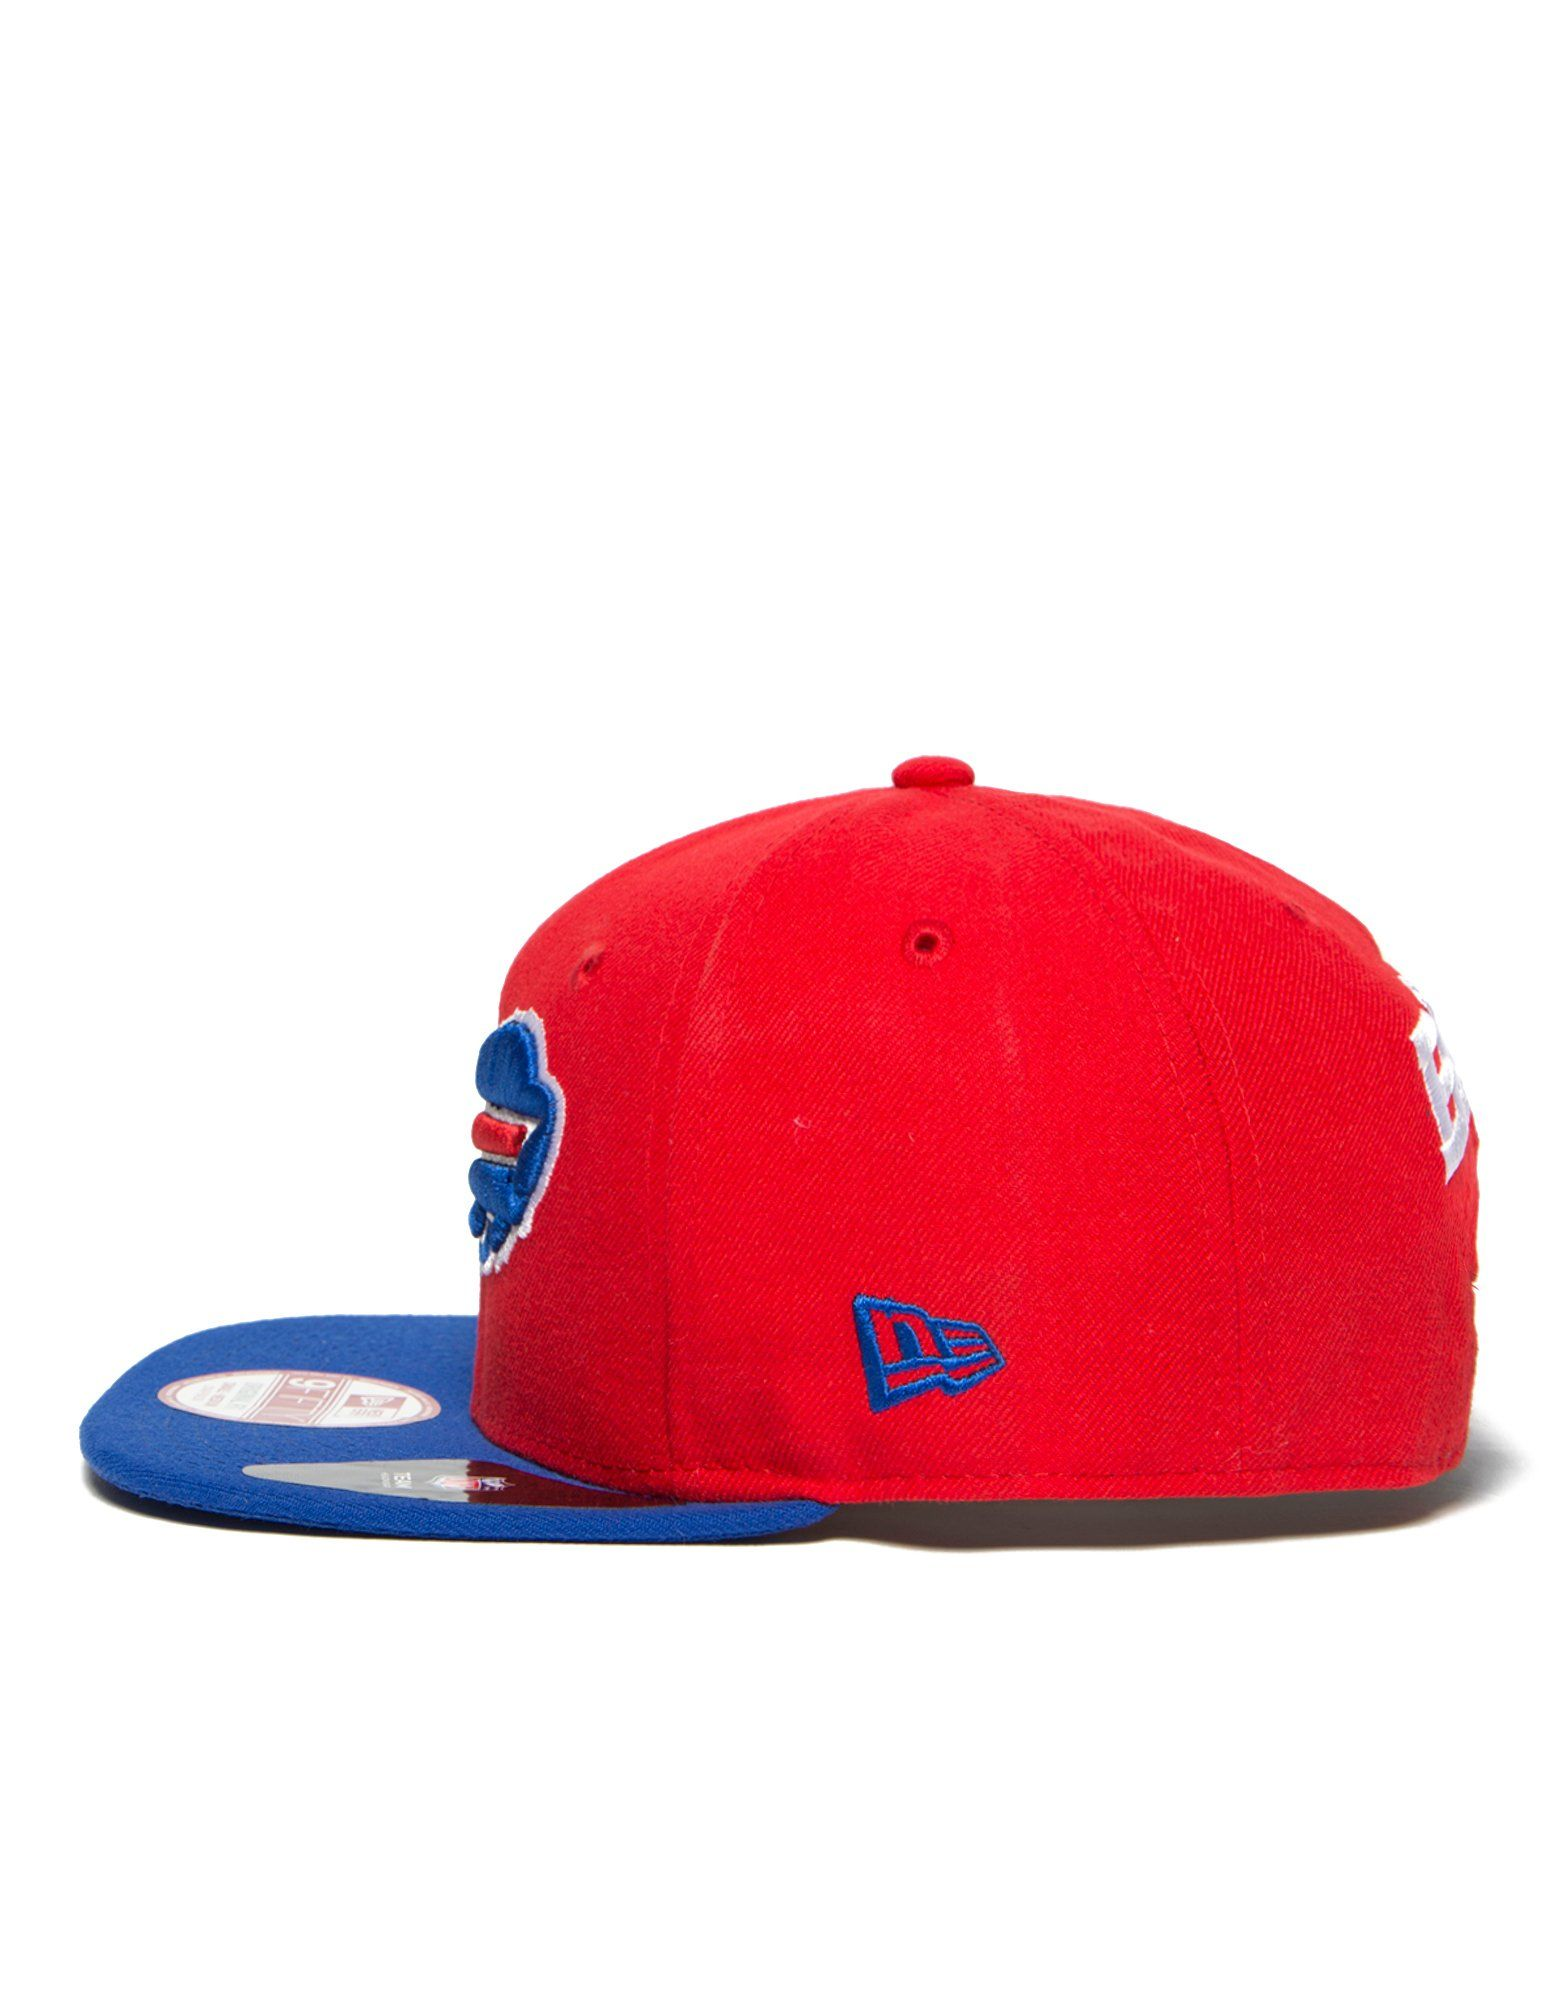 New Era NFL Buffalo Bills 9FIFTY Snapback Cap